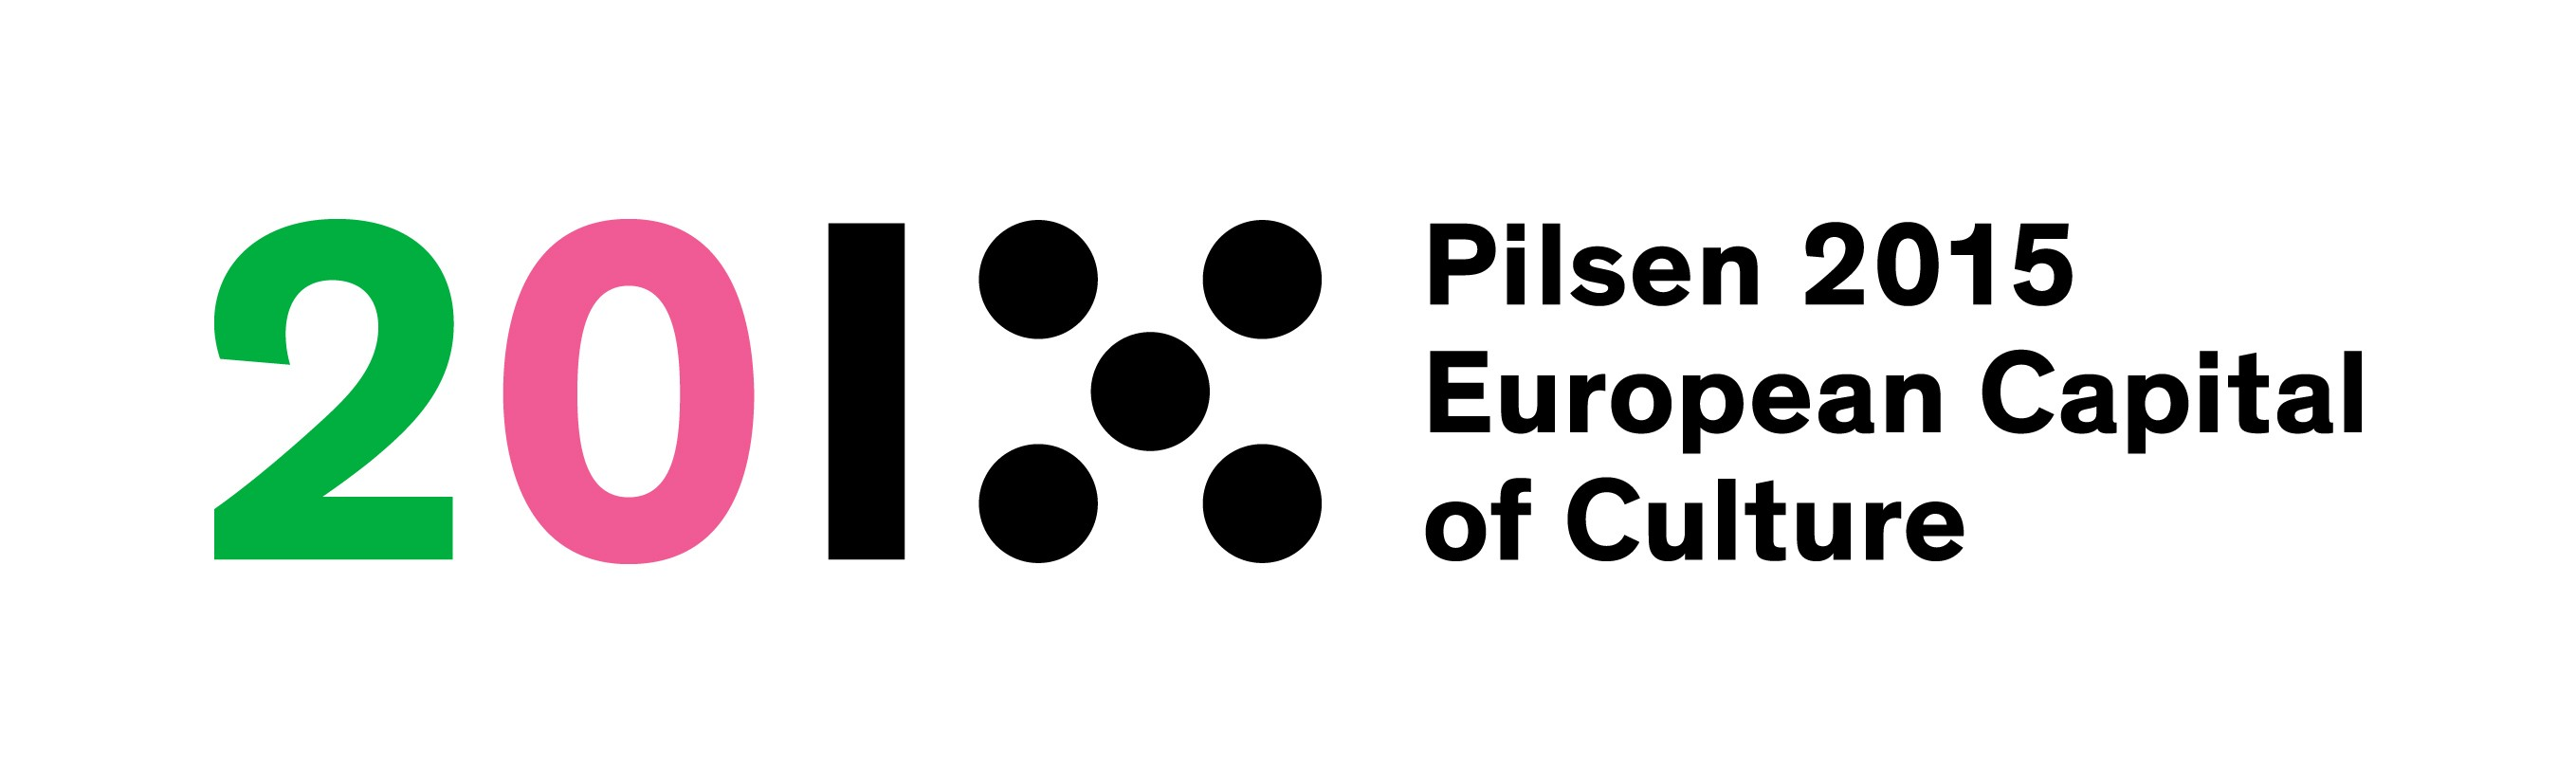 Pilsen 2015 - European Capital of Culture